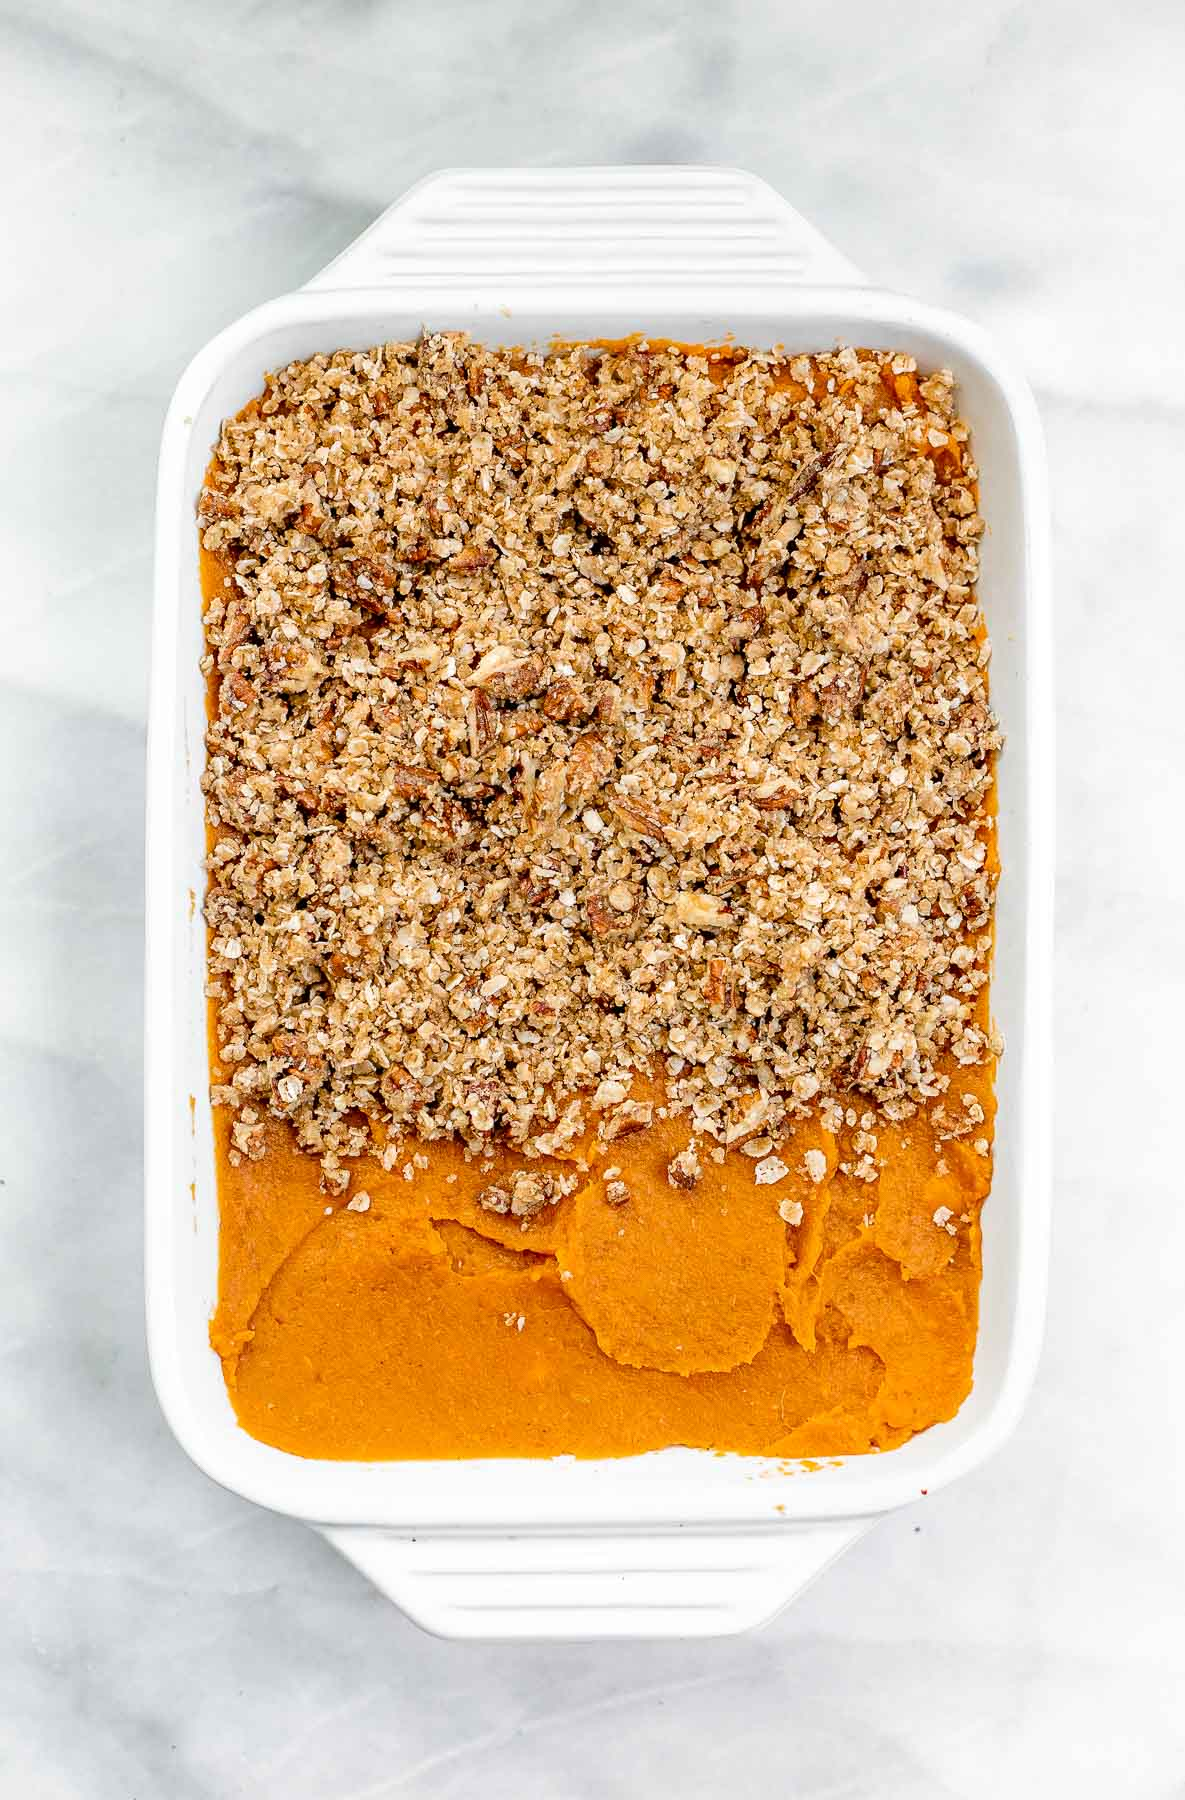 Sweet potato casserole with oat crumble on top.